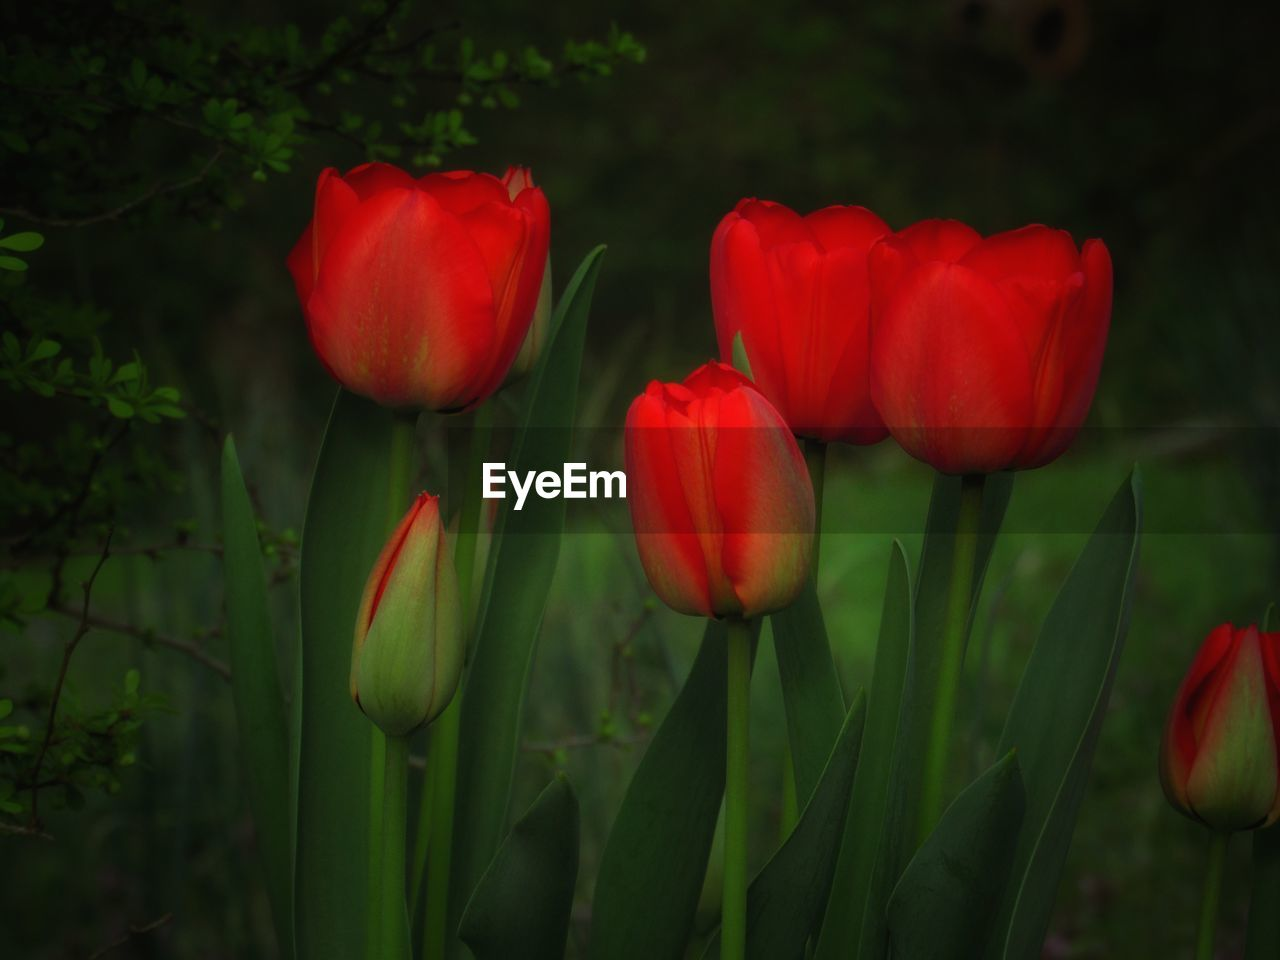 plant, flowering plant, flower, beauty in nature, freshness, petal, fragility, growth, vulnerability, close-up, flower head, red, tulip, inflorescence, nature, green color, land, field, focus on foreground, plant stem, no people, outdoors